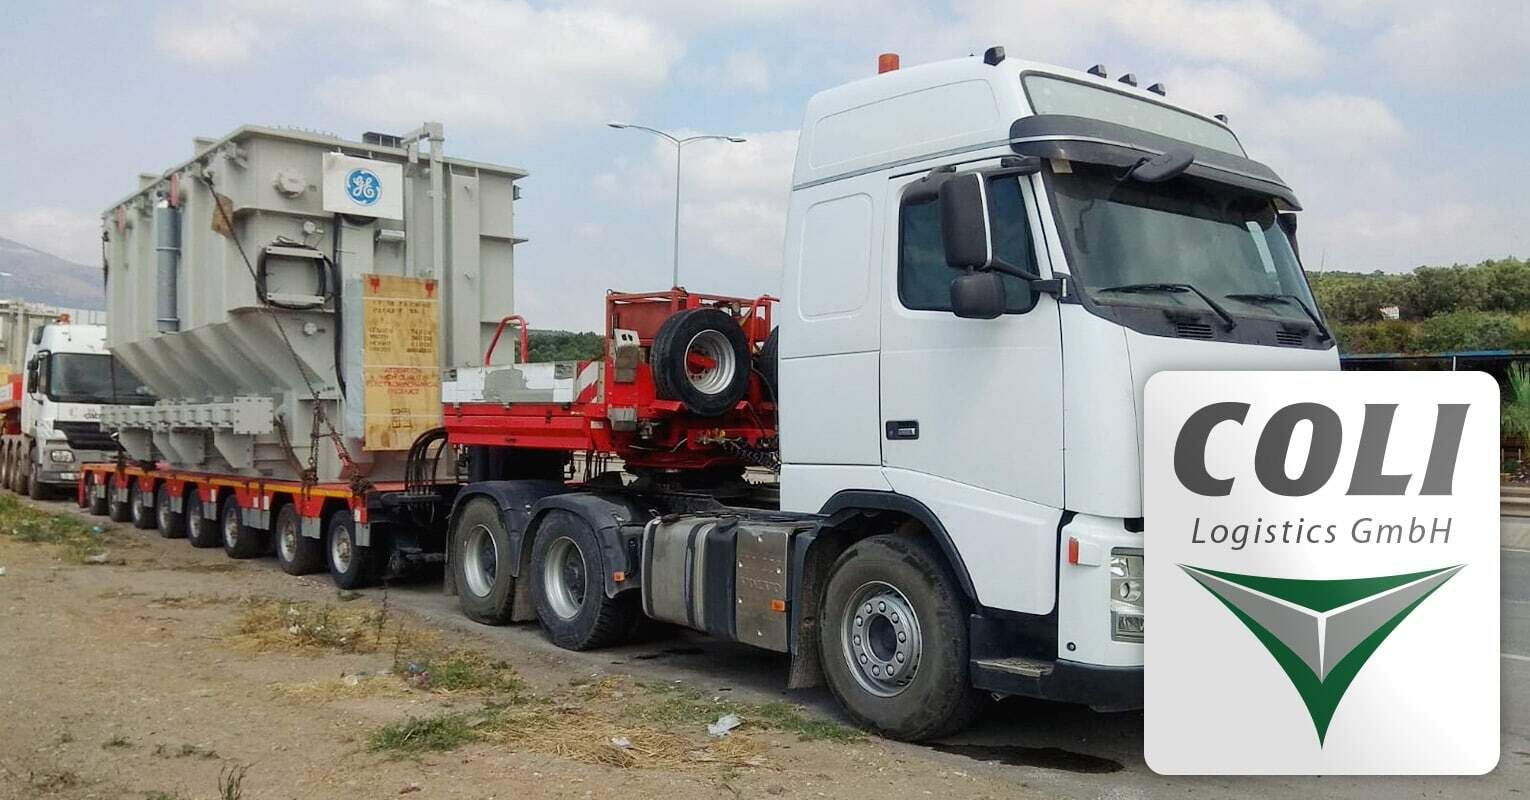 COLI Project Cargo Istanbul Loaded Two Sets of 84mt Transformers via Höegh Autoliners for Dammam, Saudi Arabia